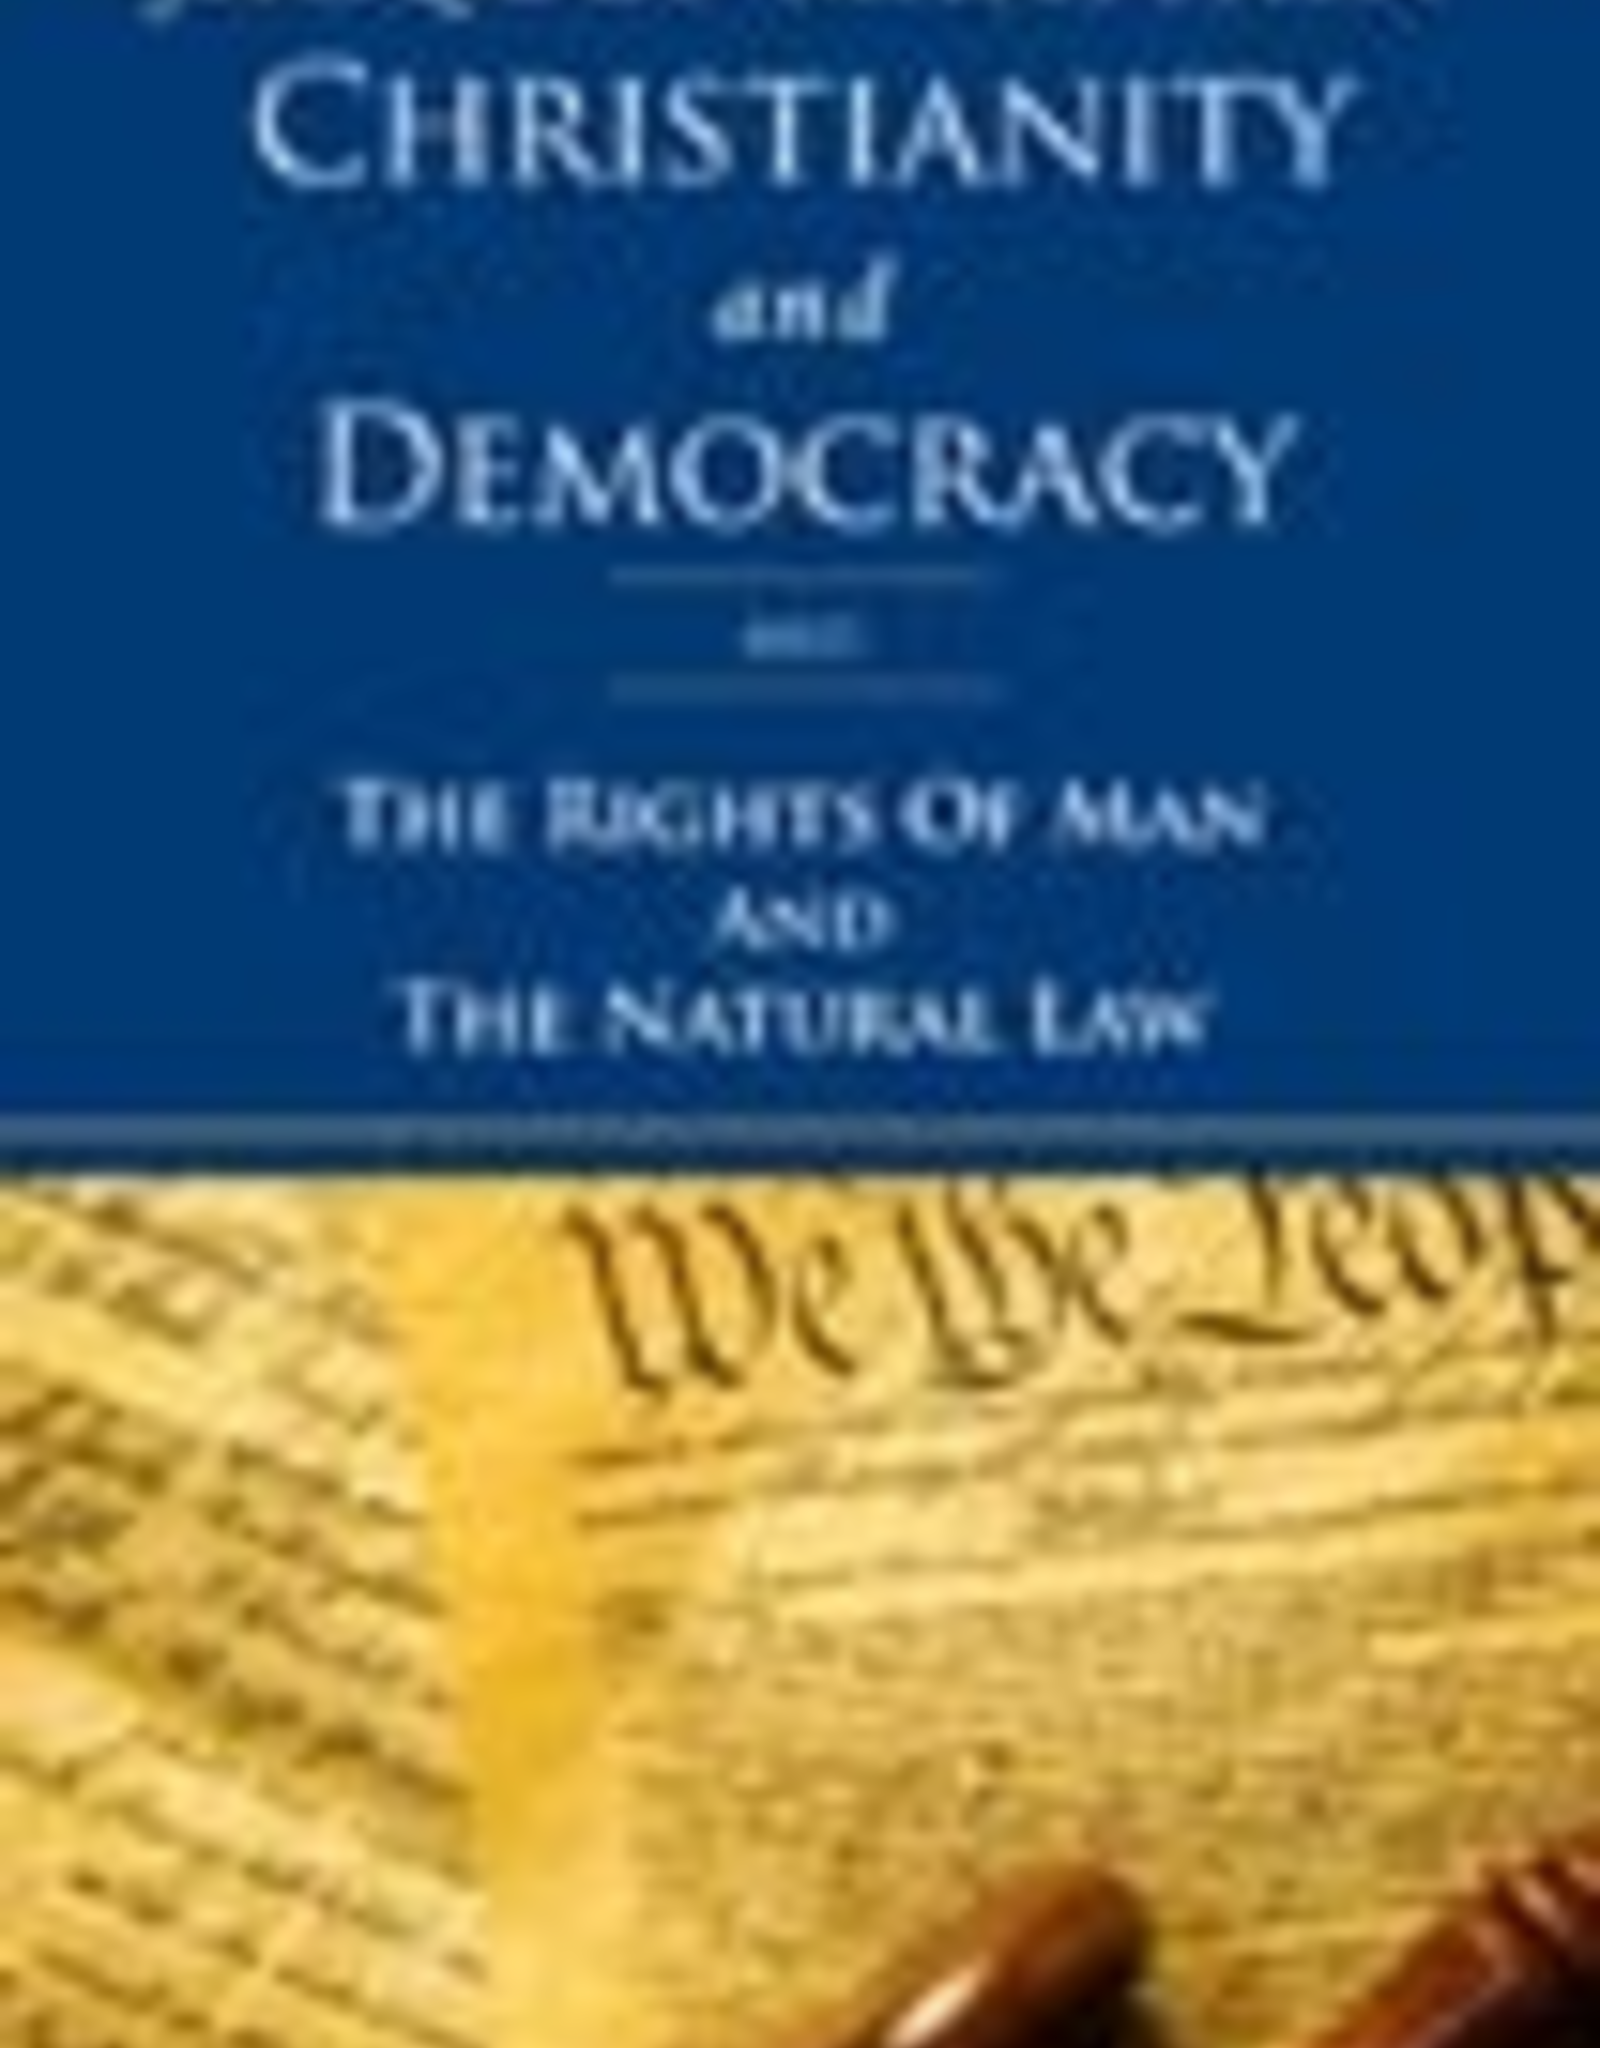 Ignatius Press Christianity and Democracy:  THe Rights of Man and The Natural Law, by Jacques Maritain (paperback)